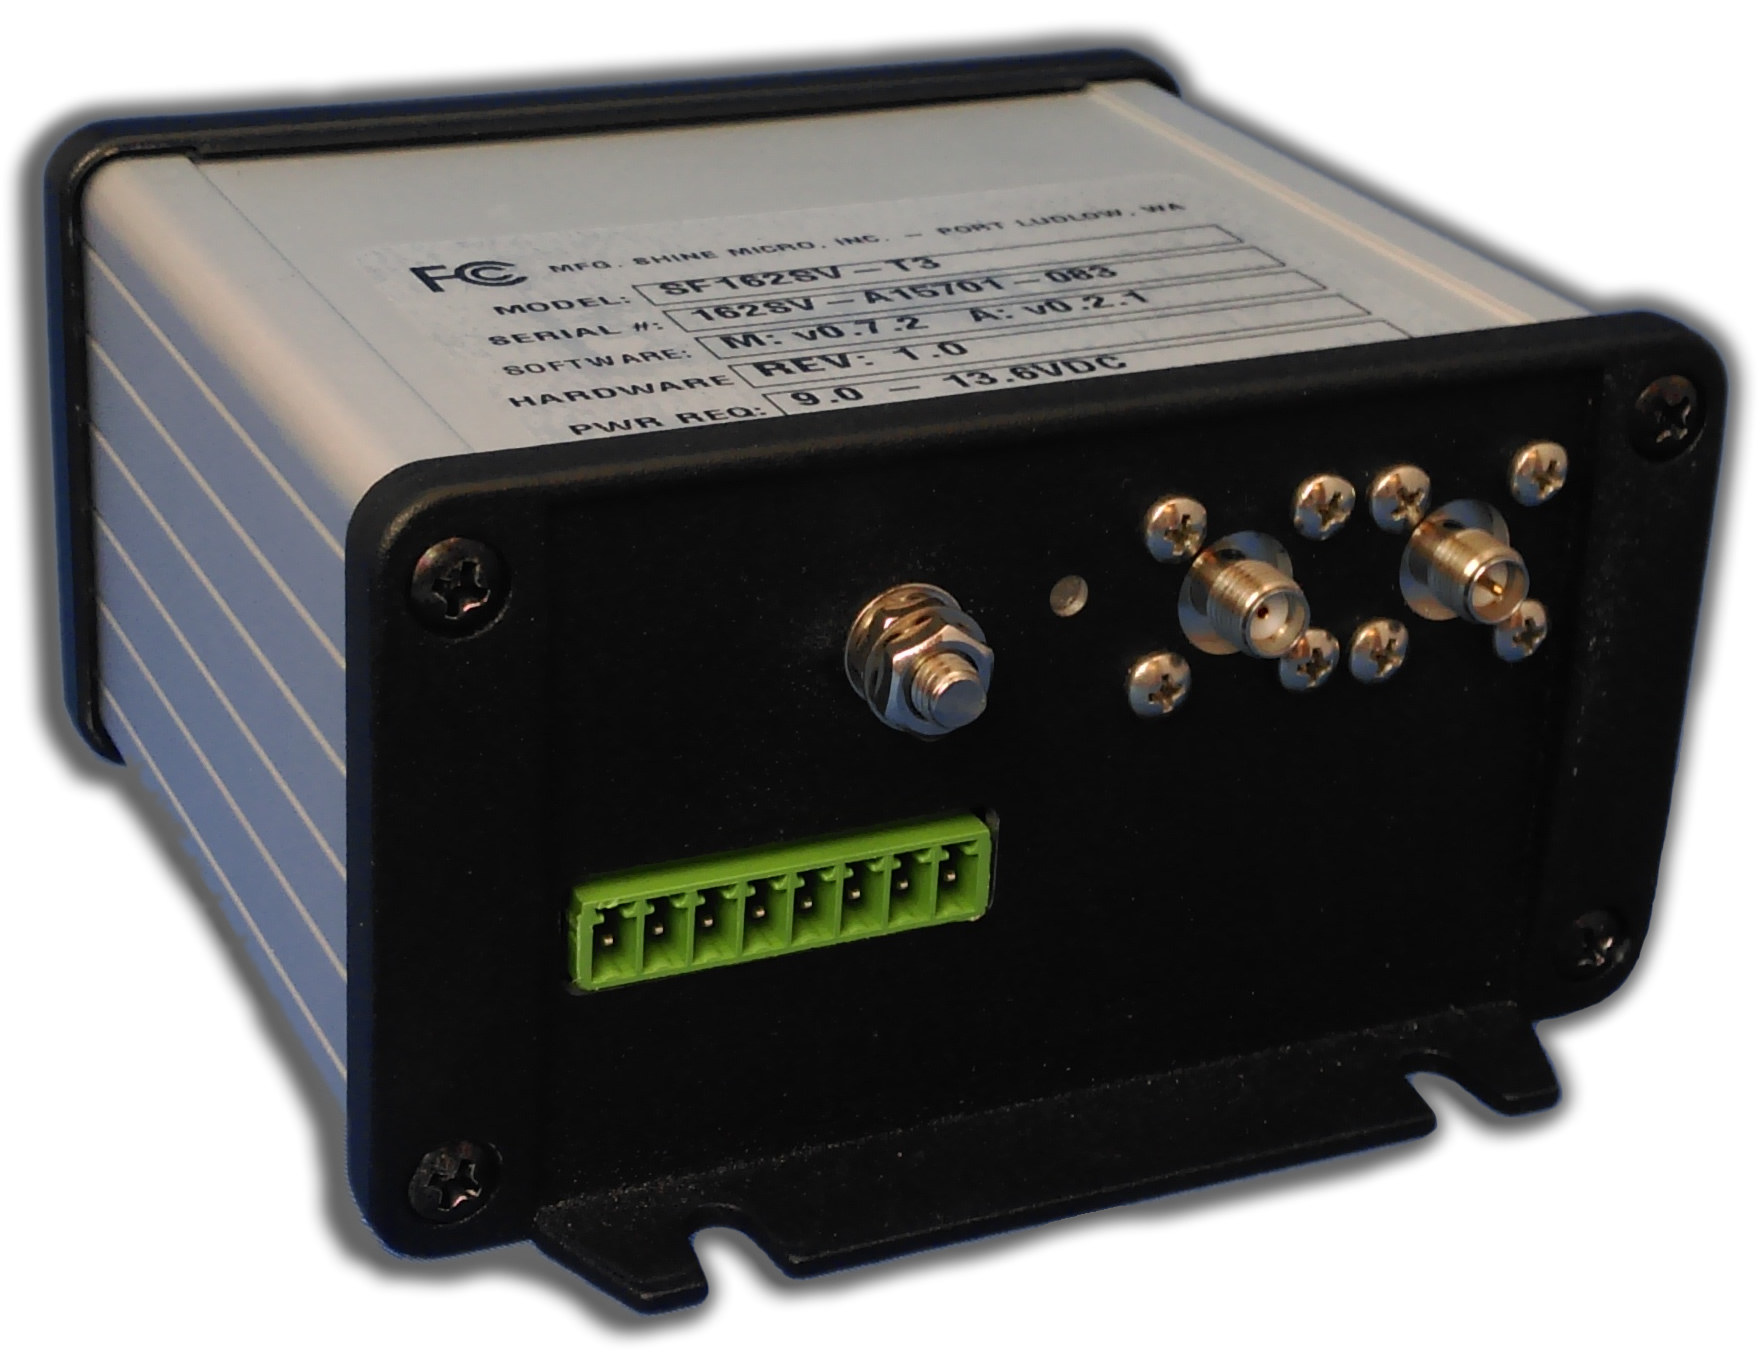 SF162SV T3 Low Power Dual AIS Receivers for Unmanned Surface